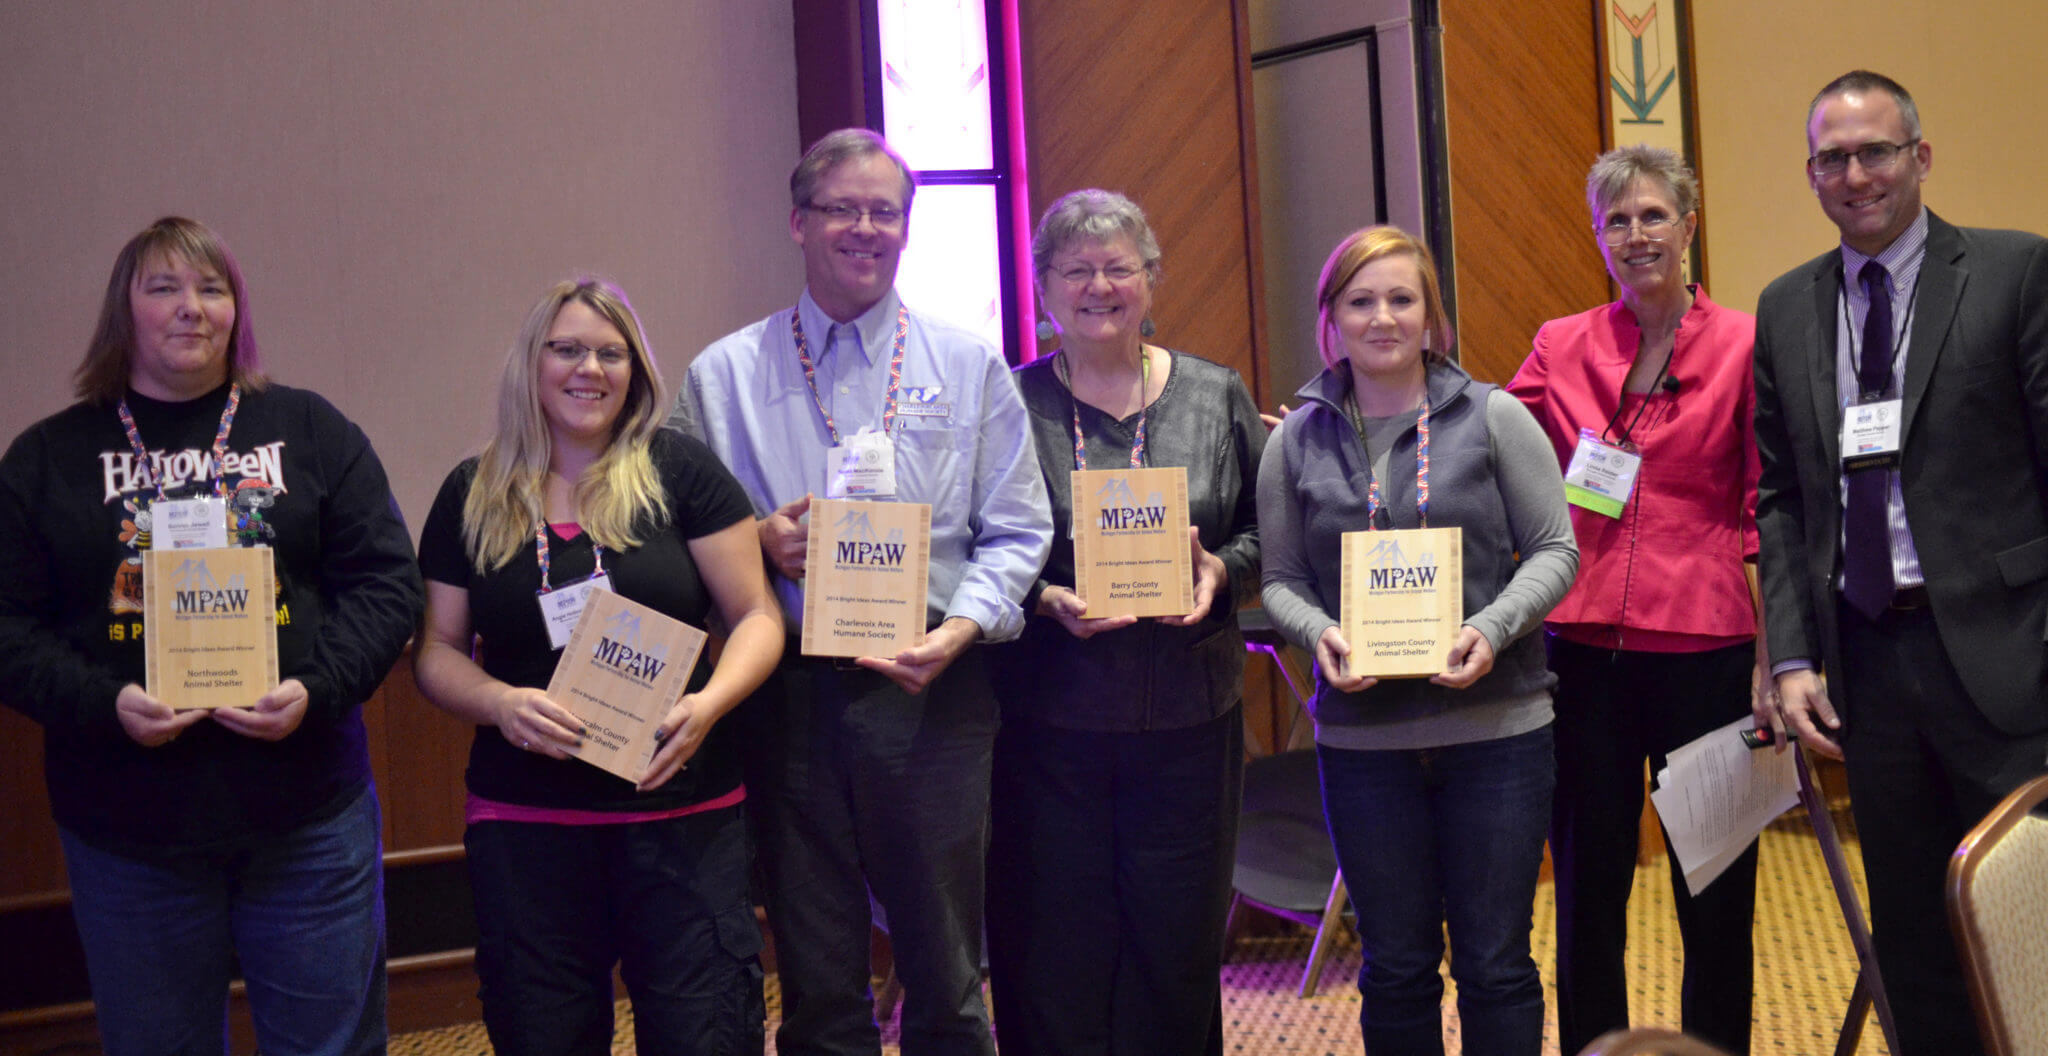 "Some Michigan animal welfare groups were awarded ""Bright Idea Awards"" for their great programs and facility improvements, community outreach and ordinances. They shared these great and innovative ideas in an afternoon session."